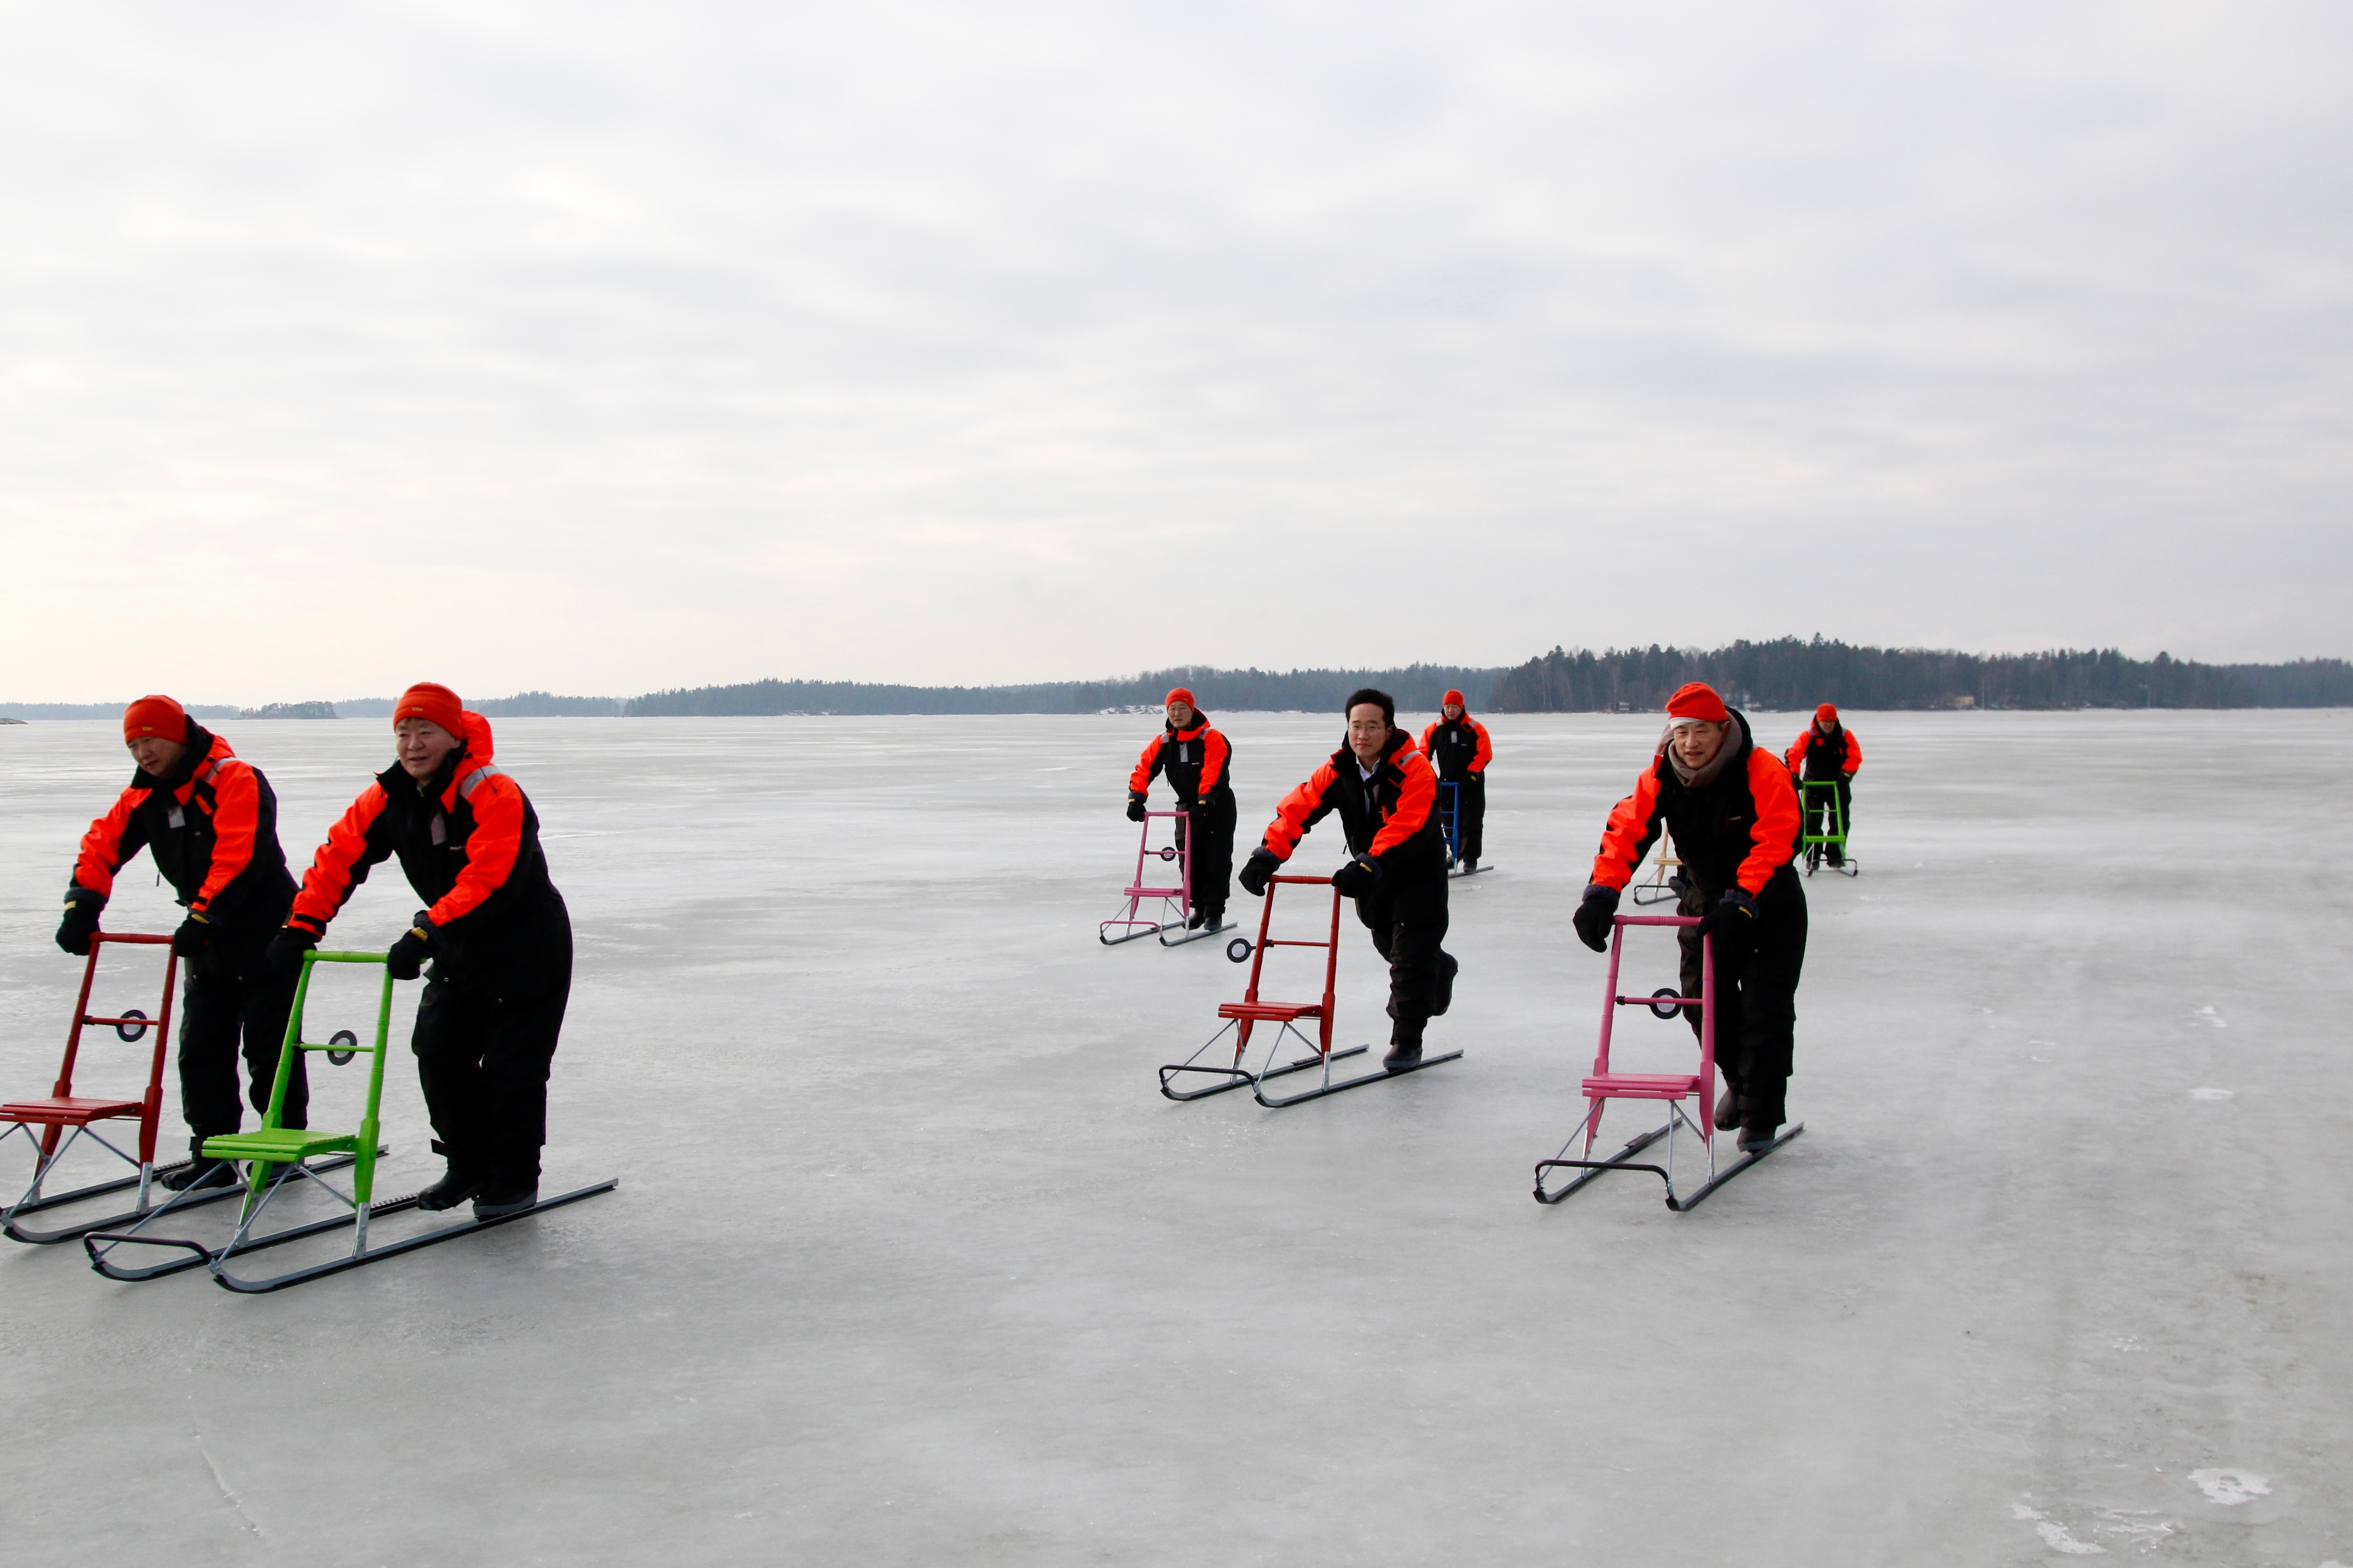 ice fishing chair beach lounger kicksled tour   burn out city